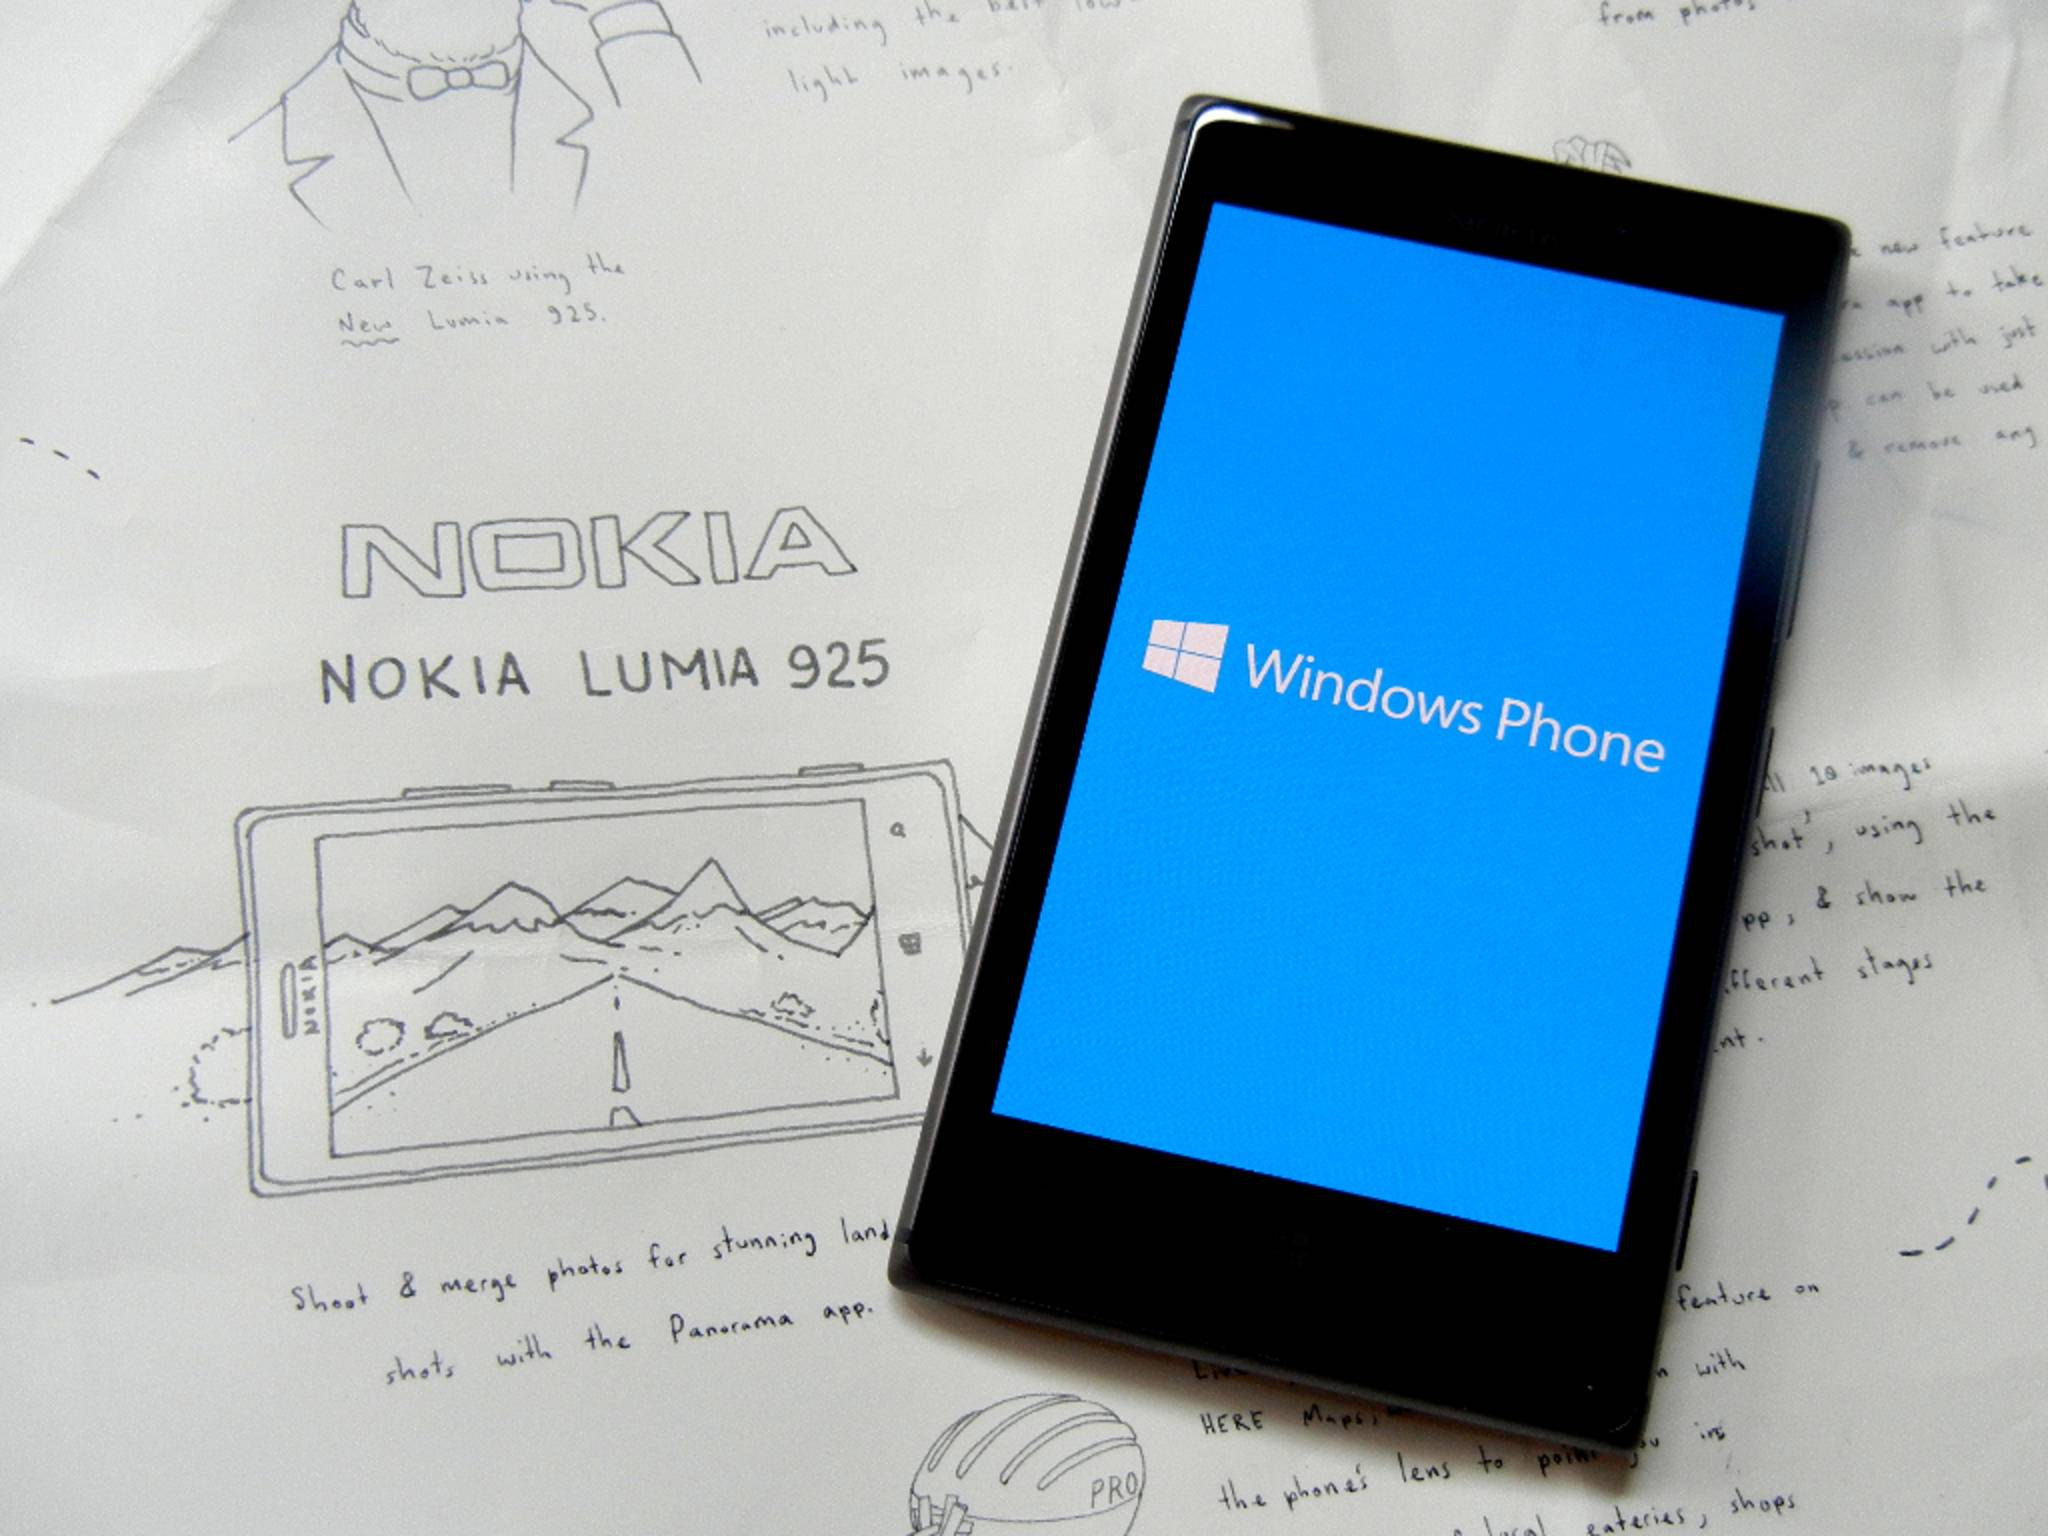 Microsoft nennt die Hardwareanforderungen für Windows 10 Mobile.